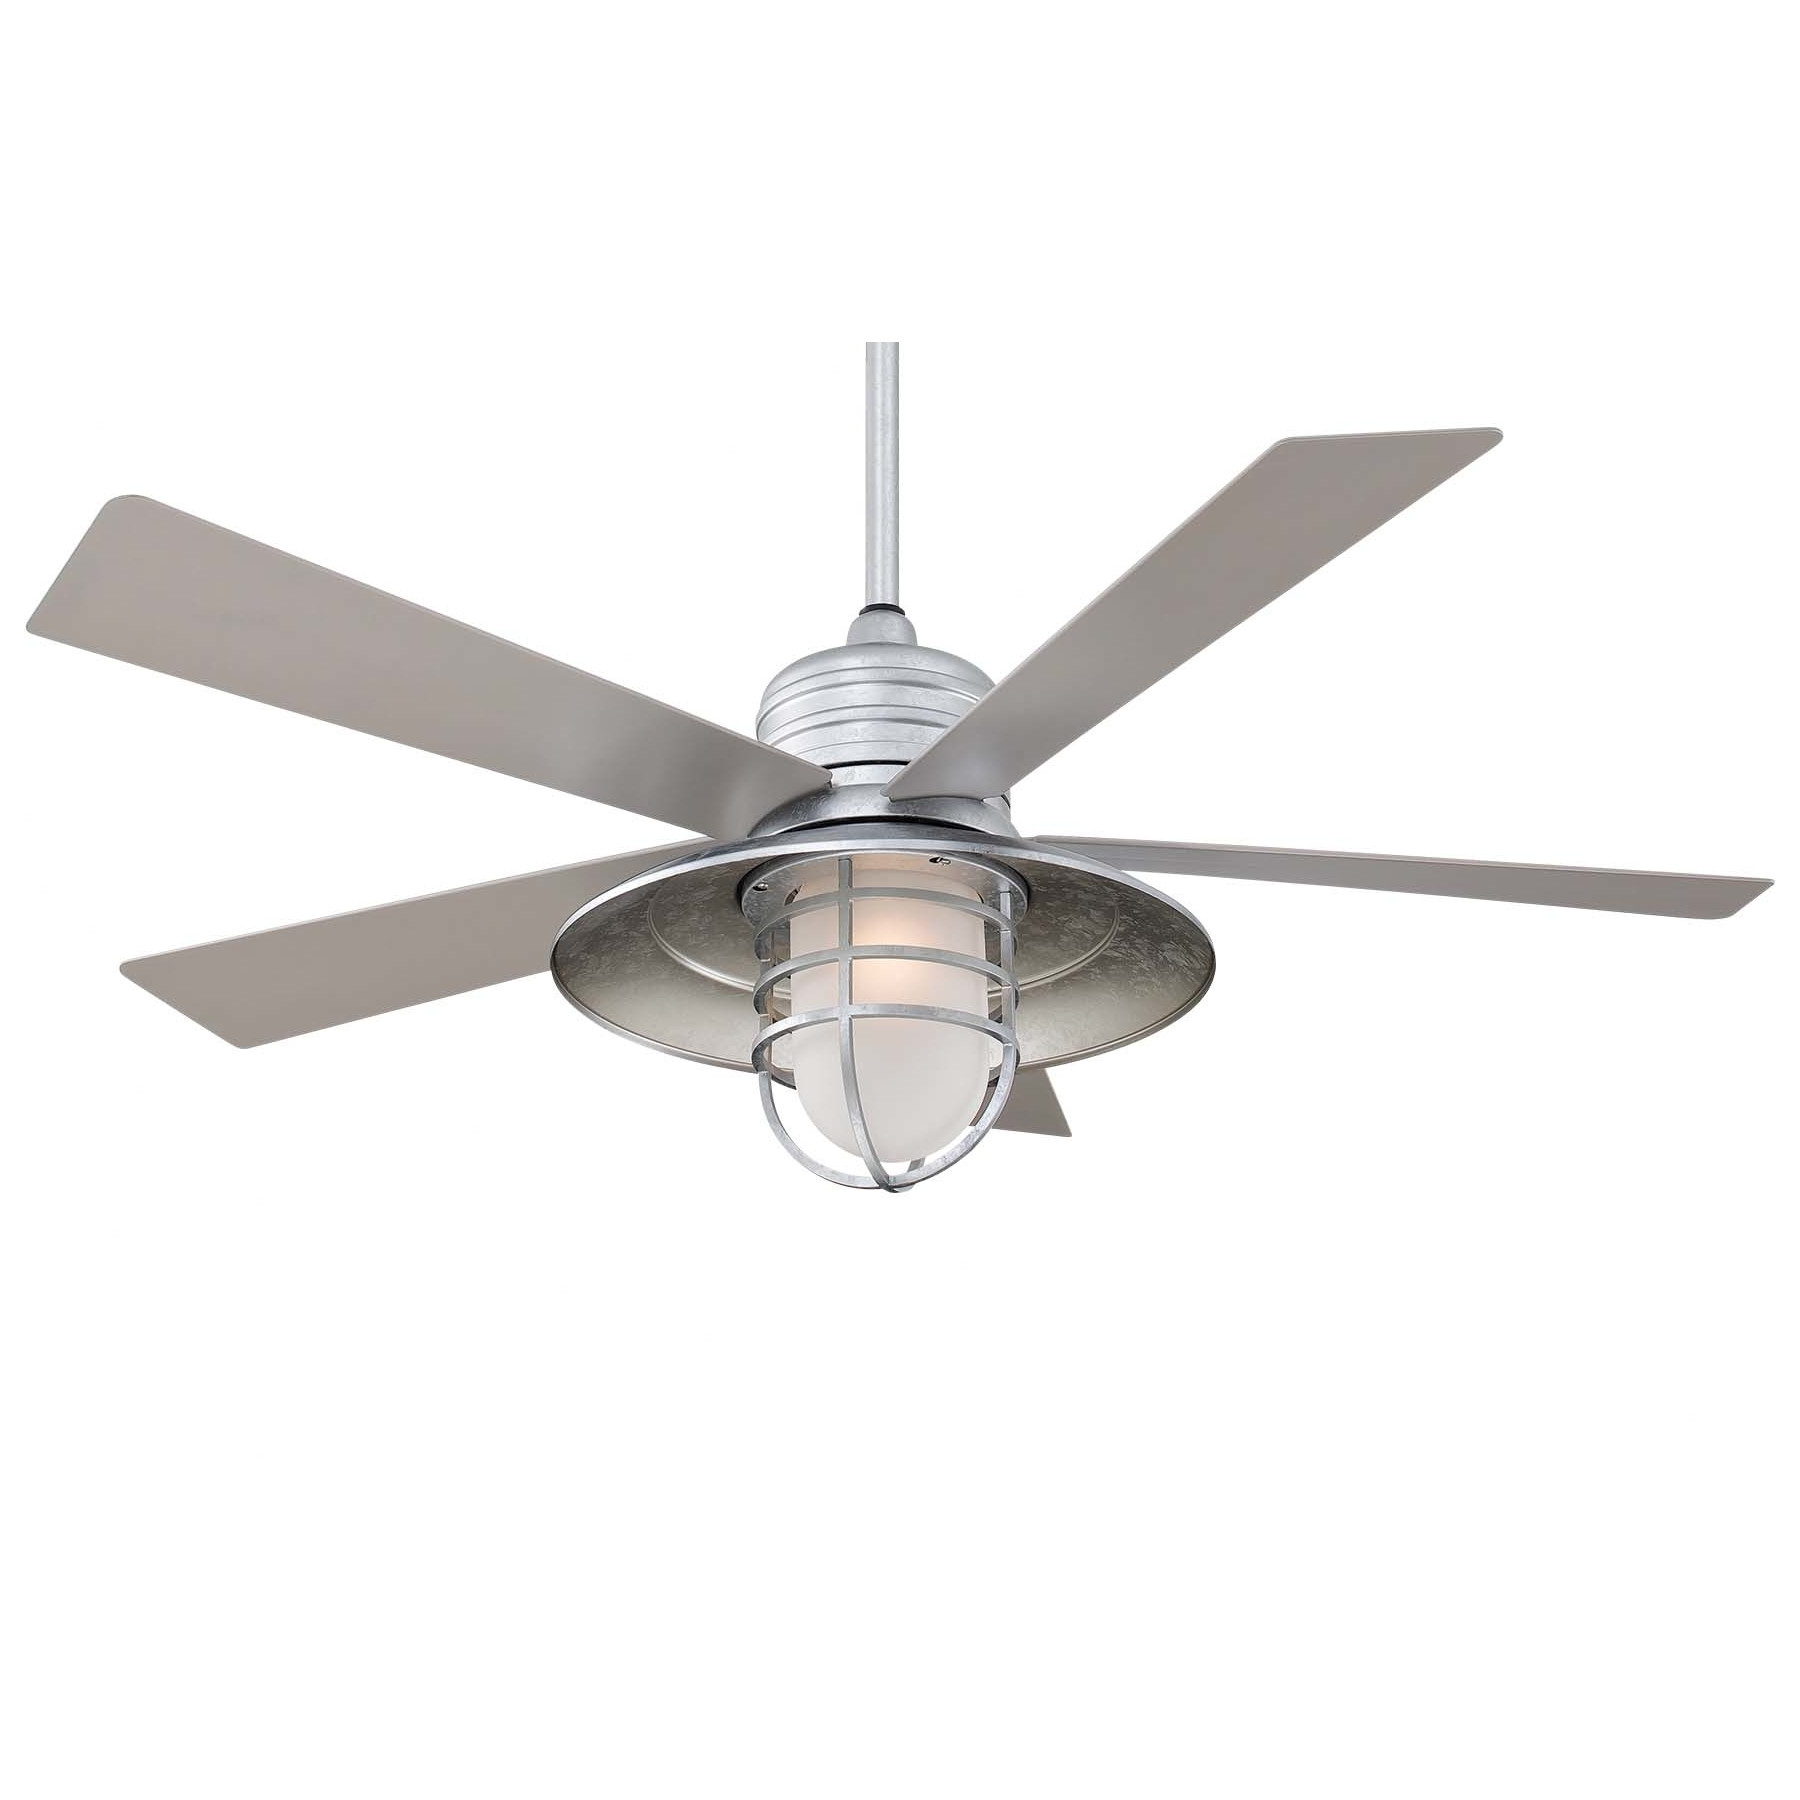 Favorite 42 Wayfair Ceiling Fans, Minka Aire 54quot; Rainman 5 Blade Indoor Within Wayfair Outdoor Ceiling Fans With Lights (View 3 of 20)